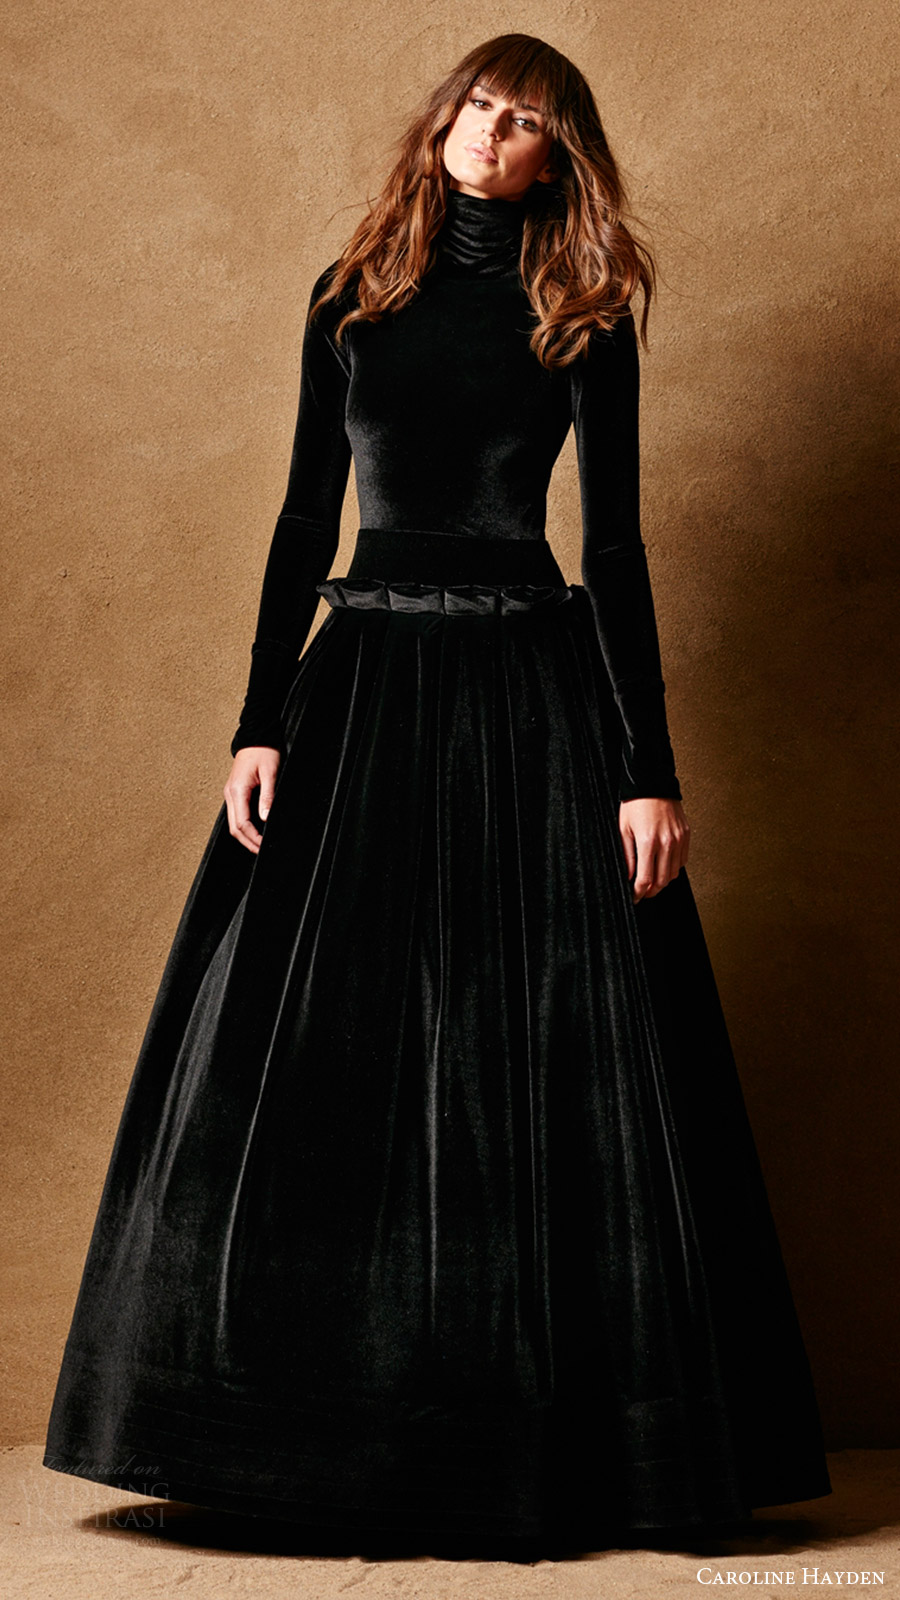 Caroline Hayden Bridal 2017 Long Sleeves High Neck Ball Gown Wedding Dress Ch007 Black